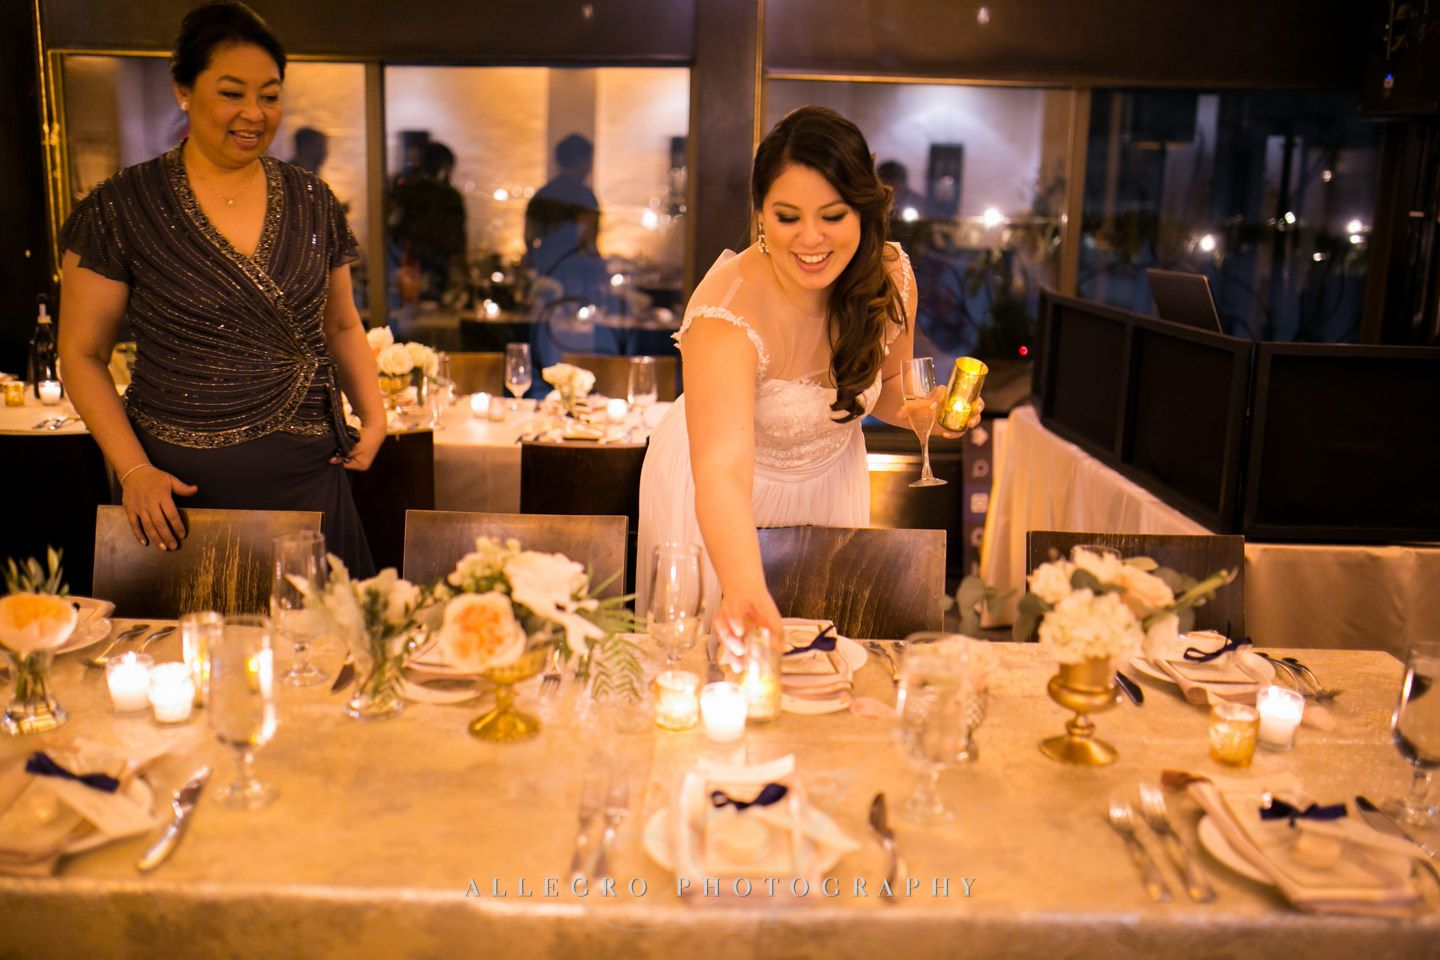 the planner at her own wedding - photo by Allegro Photography